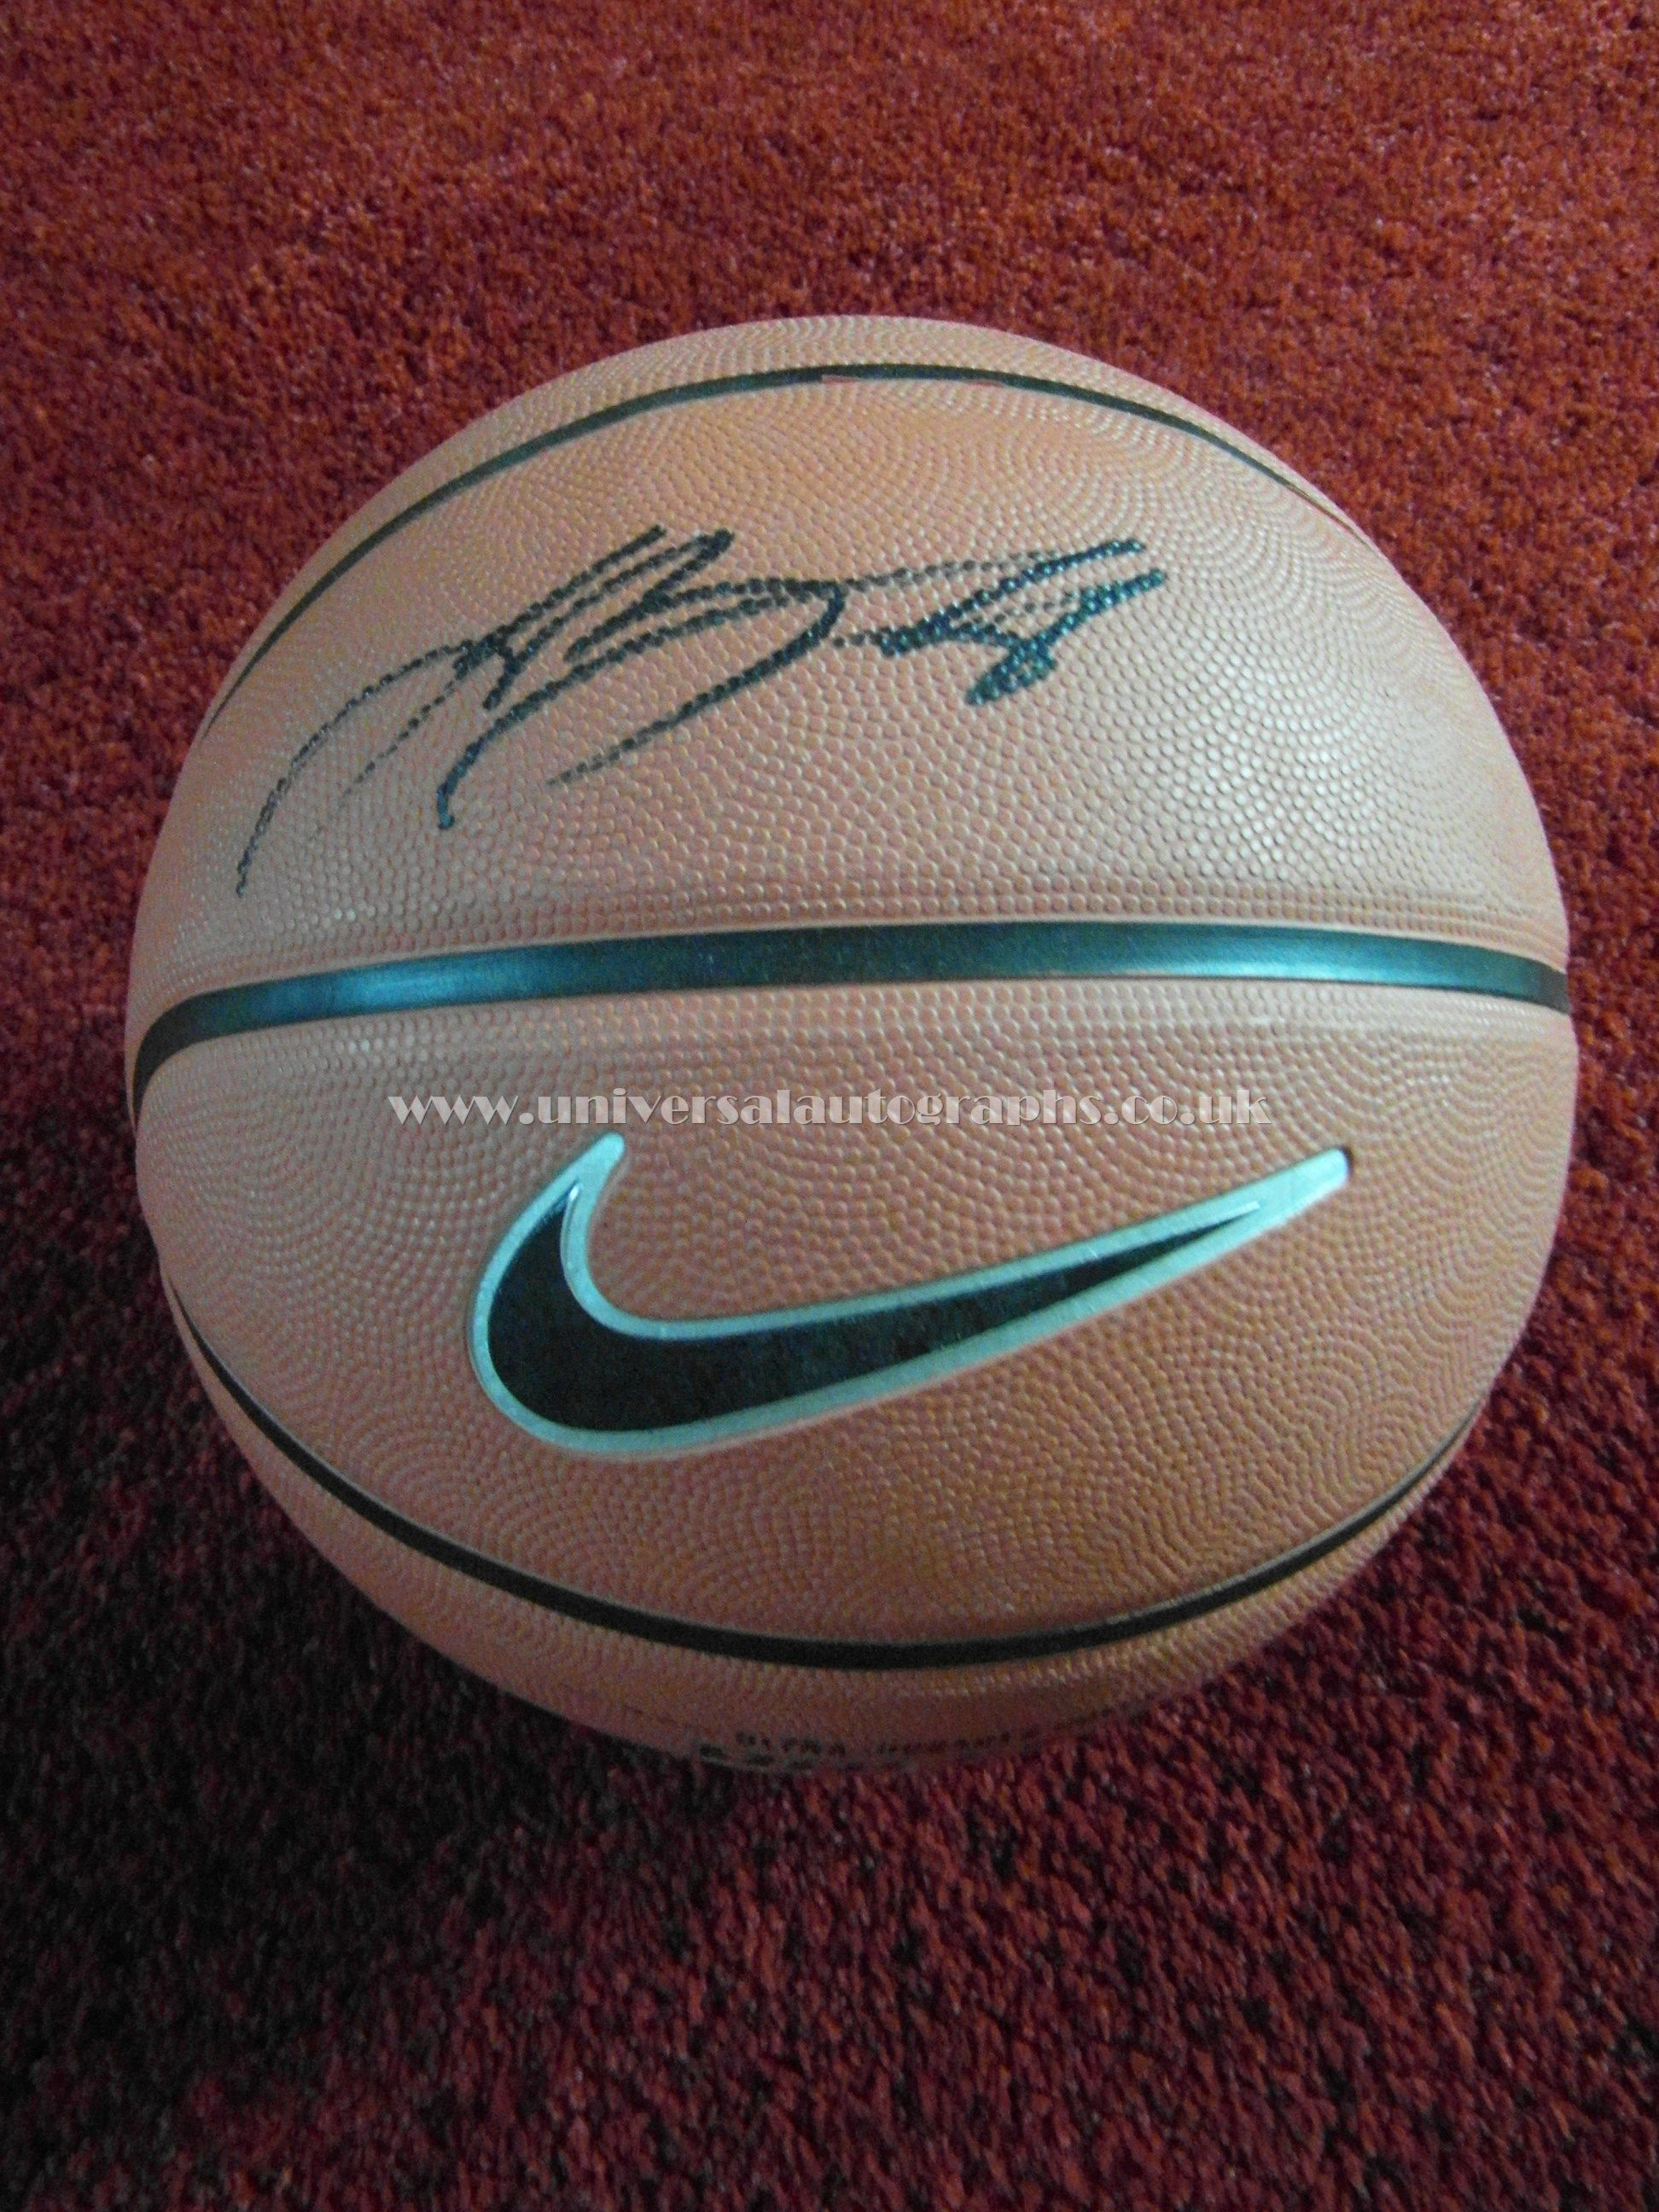 Lebron James signed basketball available on the website http://www.universalautographs.co.uk/lebron-james-basketball-208-p.asp